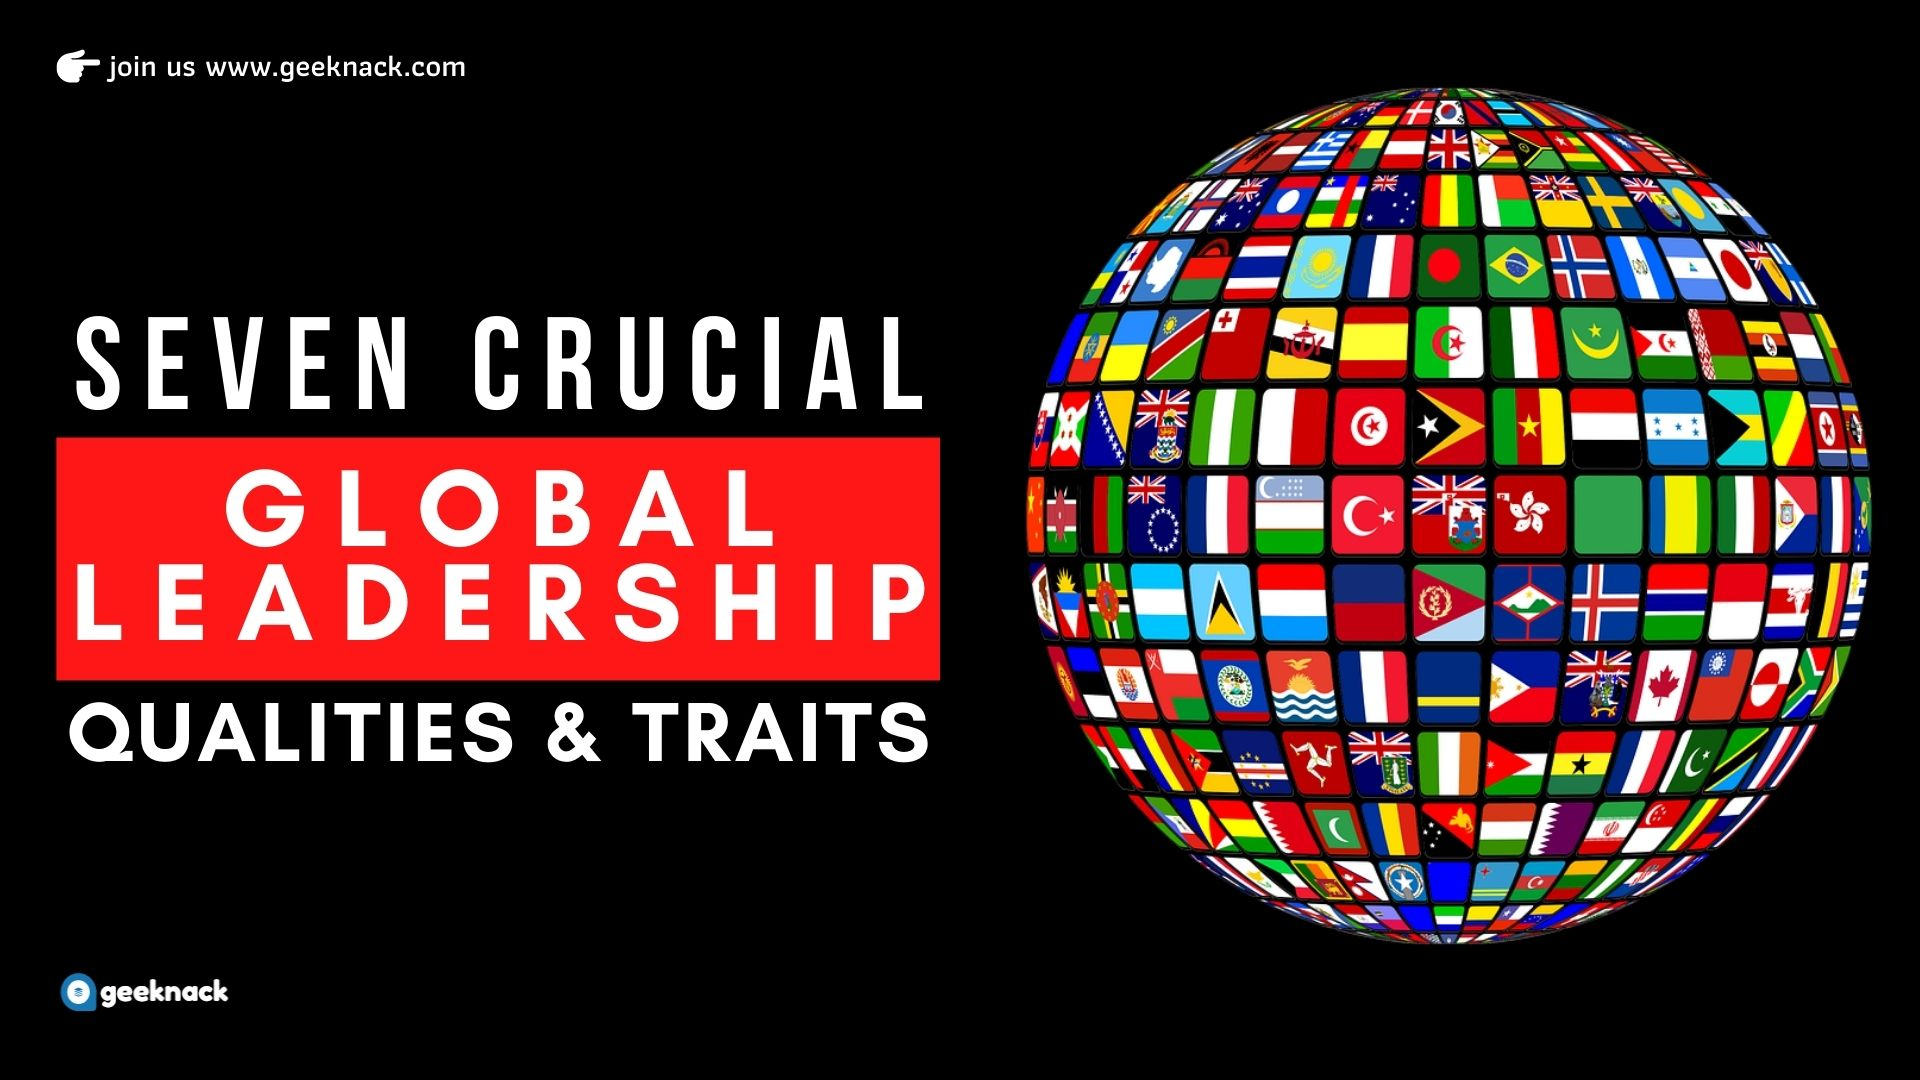 Seven Crucial Global Leadership Qualities & Traits